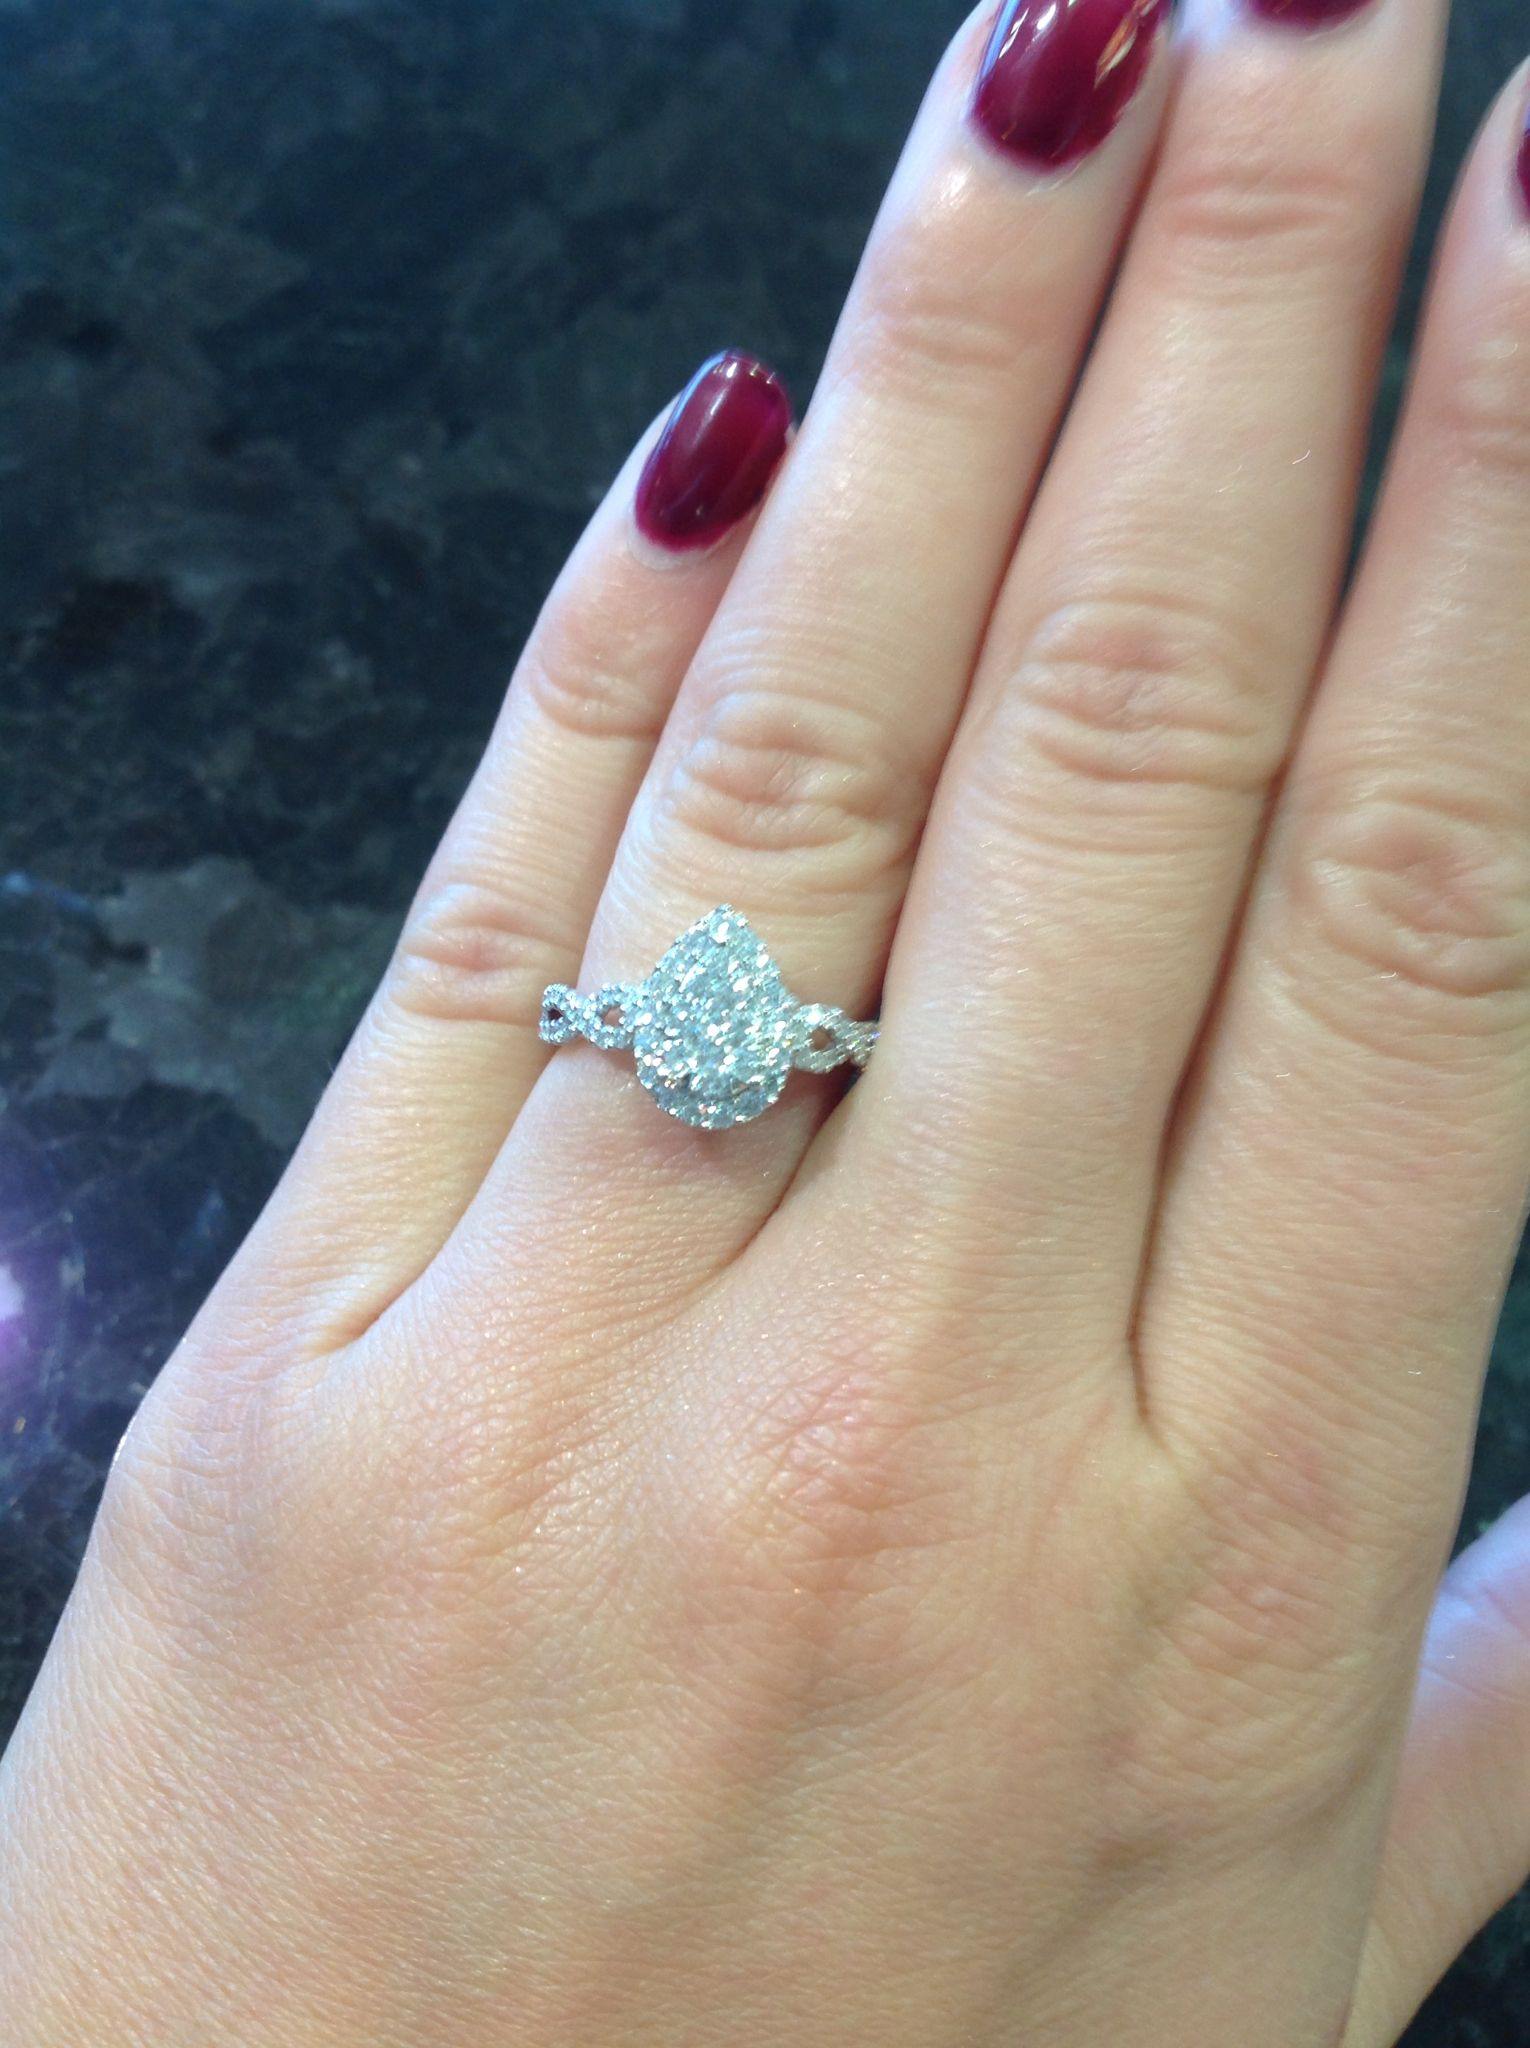 This Pear Shaped Cluster Style Engagement Ring Features A